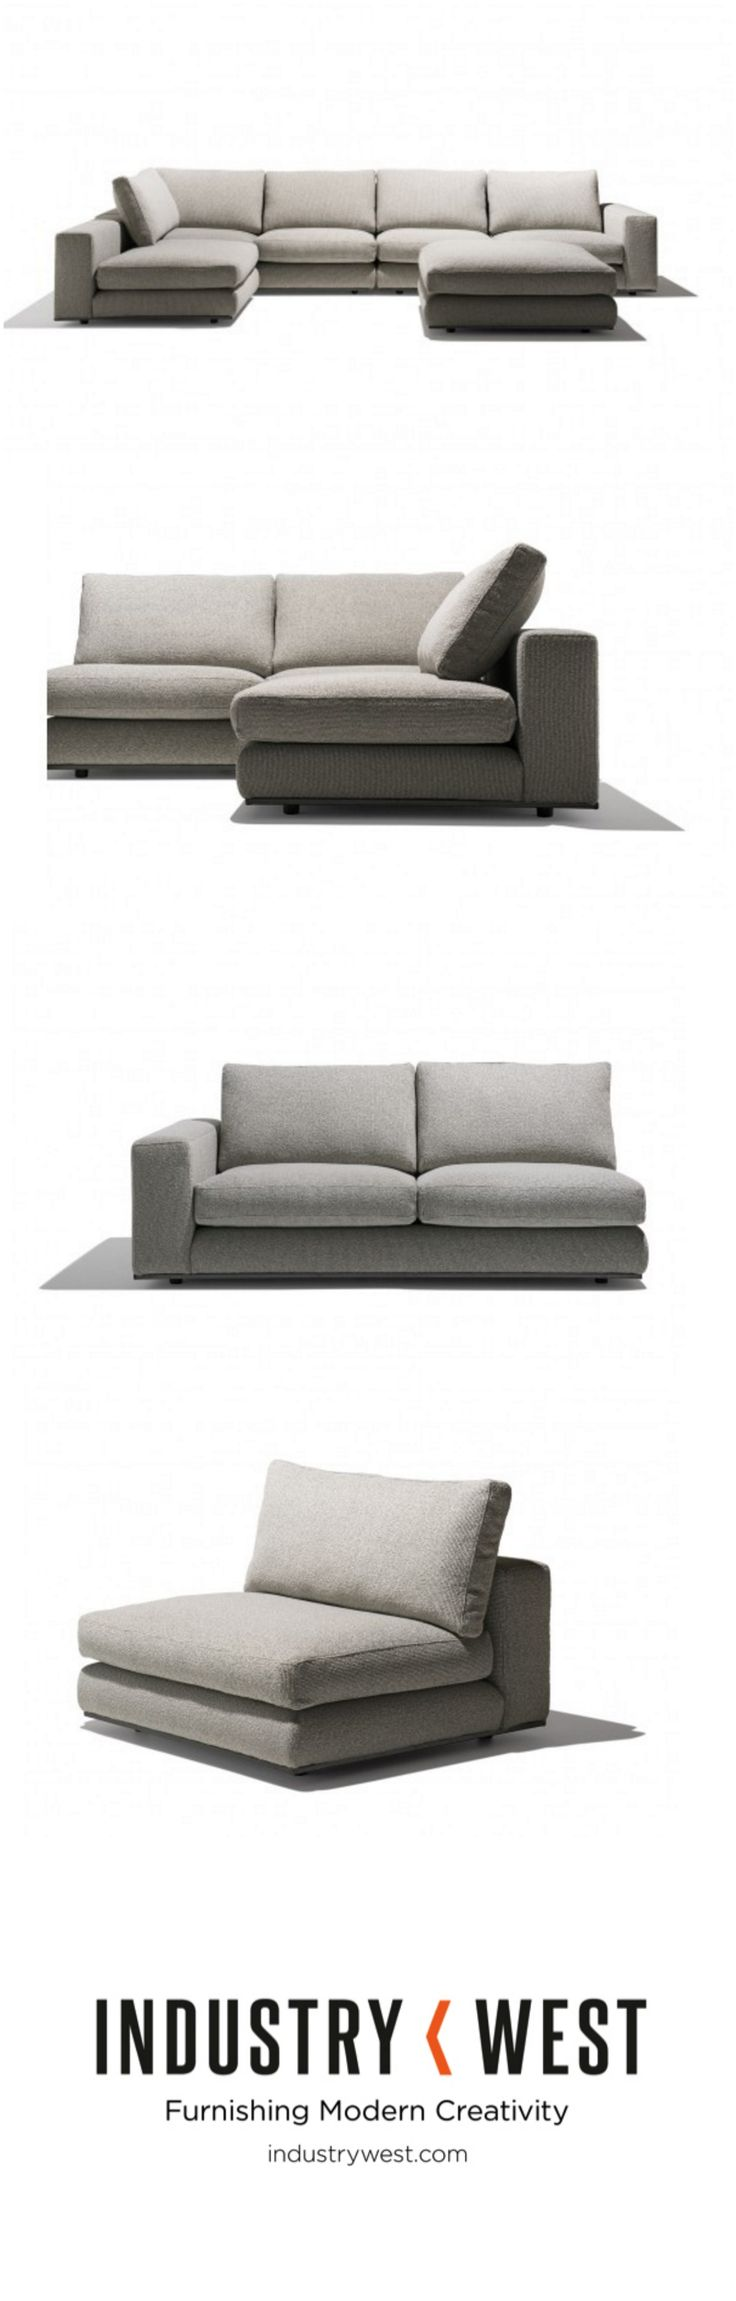 17 Best ideas about Sectional Sofa on Pinterest